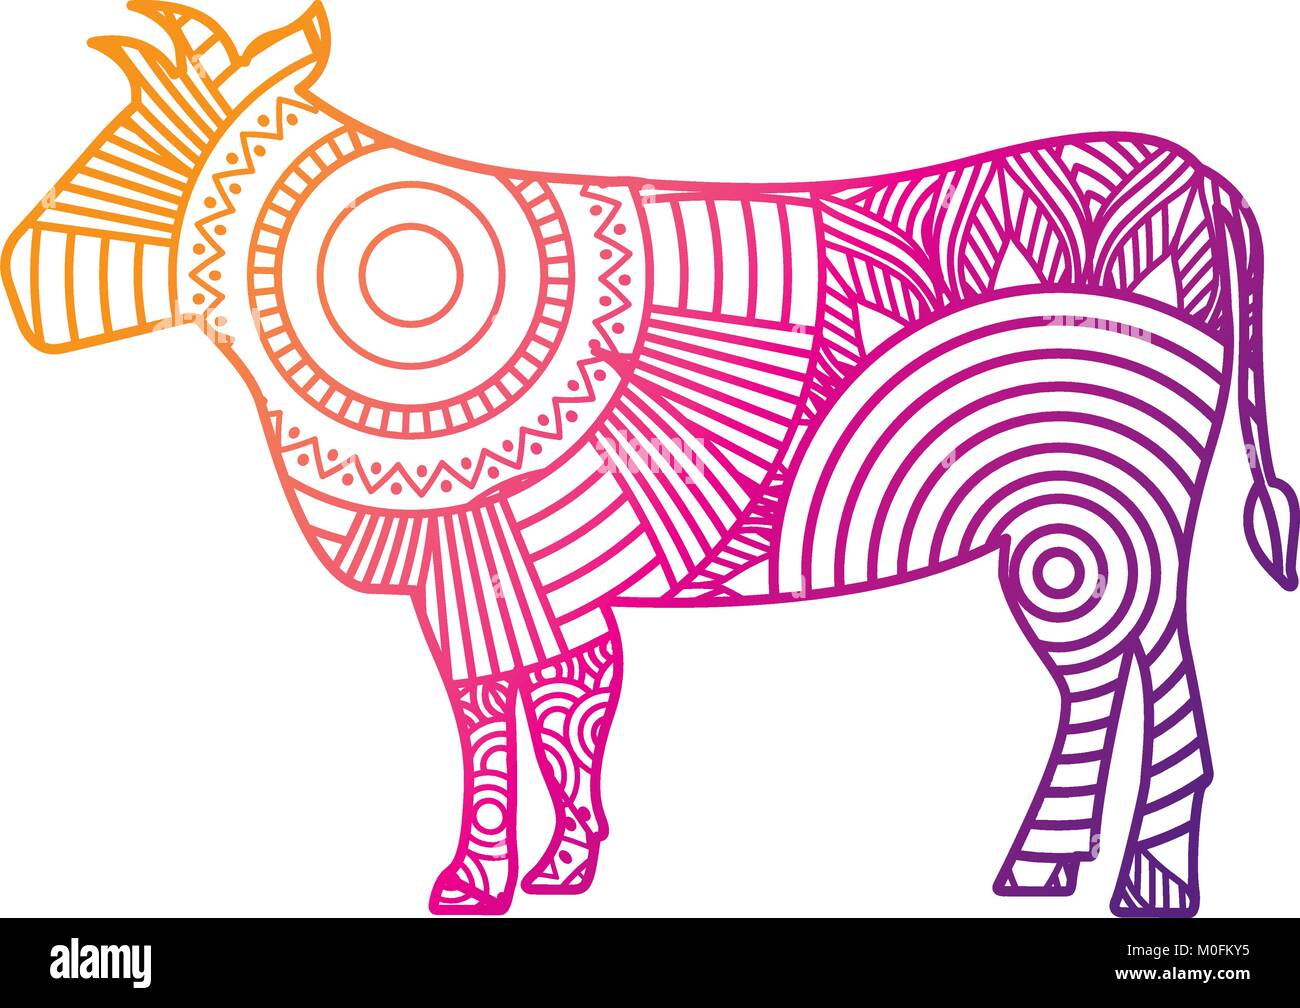 Coloring Farm Stock Photos & Coloring Farm Stock Images - Alamy